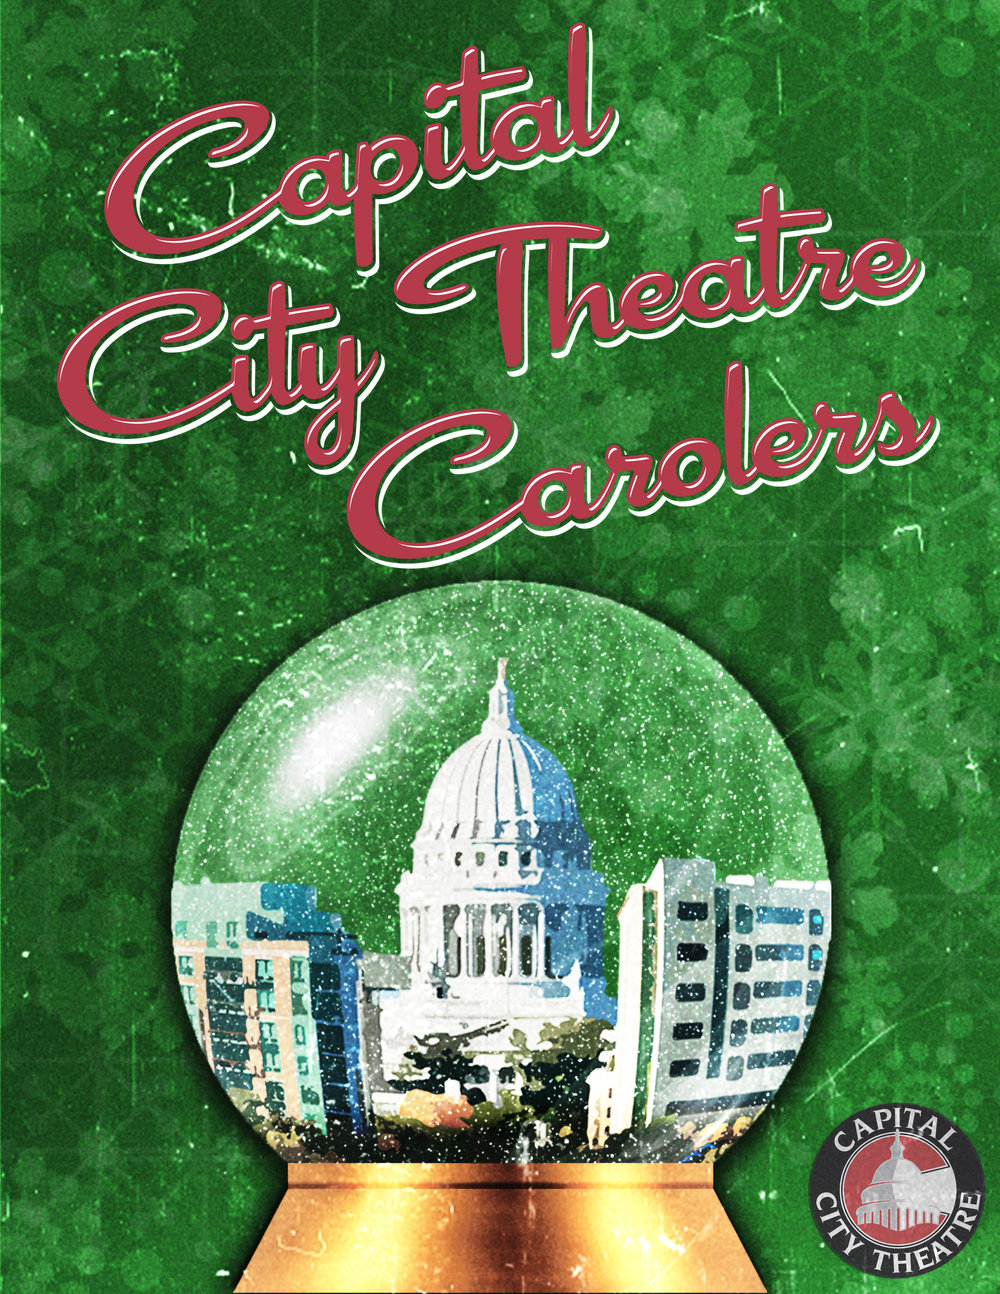 For Your Holiday Event - Let Capital City Theatre Carolers bring that perfect amount of holiday spirit to your event or location!Our professional quartets will entertain your guests in nostalgic Norman Rockwellian style. Wearing costumes that reflect seasonal wear from the fifties, our singers croon classic holiday songs with impeccable accapella 4-part harmony. Hear all your favorites like White Christmas, Jingle Bell Rock, Silver Bells, and more! We also include some not so often heard gems like Jing-A-Ling, I'd Like To Hitch A Ride With Santa Claus, and Snow! Want to hear your old favorites? We can do that too, by adding cherished traditional carols such as Silent Night, Jingle Bells, Carols Of The Bells, and many others.Need more than a quartet? We can add as many singers as you need! We have a core group of professional music theatre performers so you get all the expertise of not only incredible singers, but active, engaged entertainers delighting your listeners.